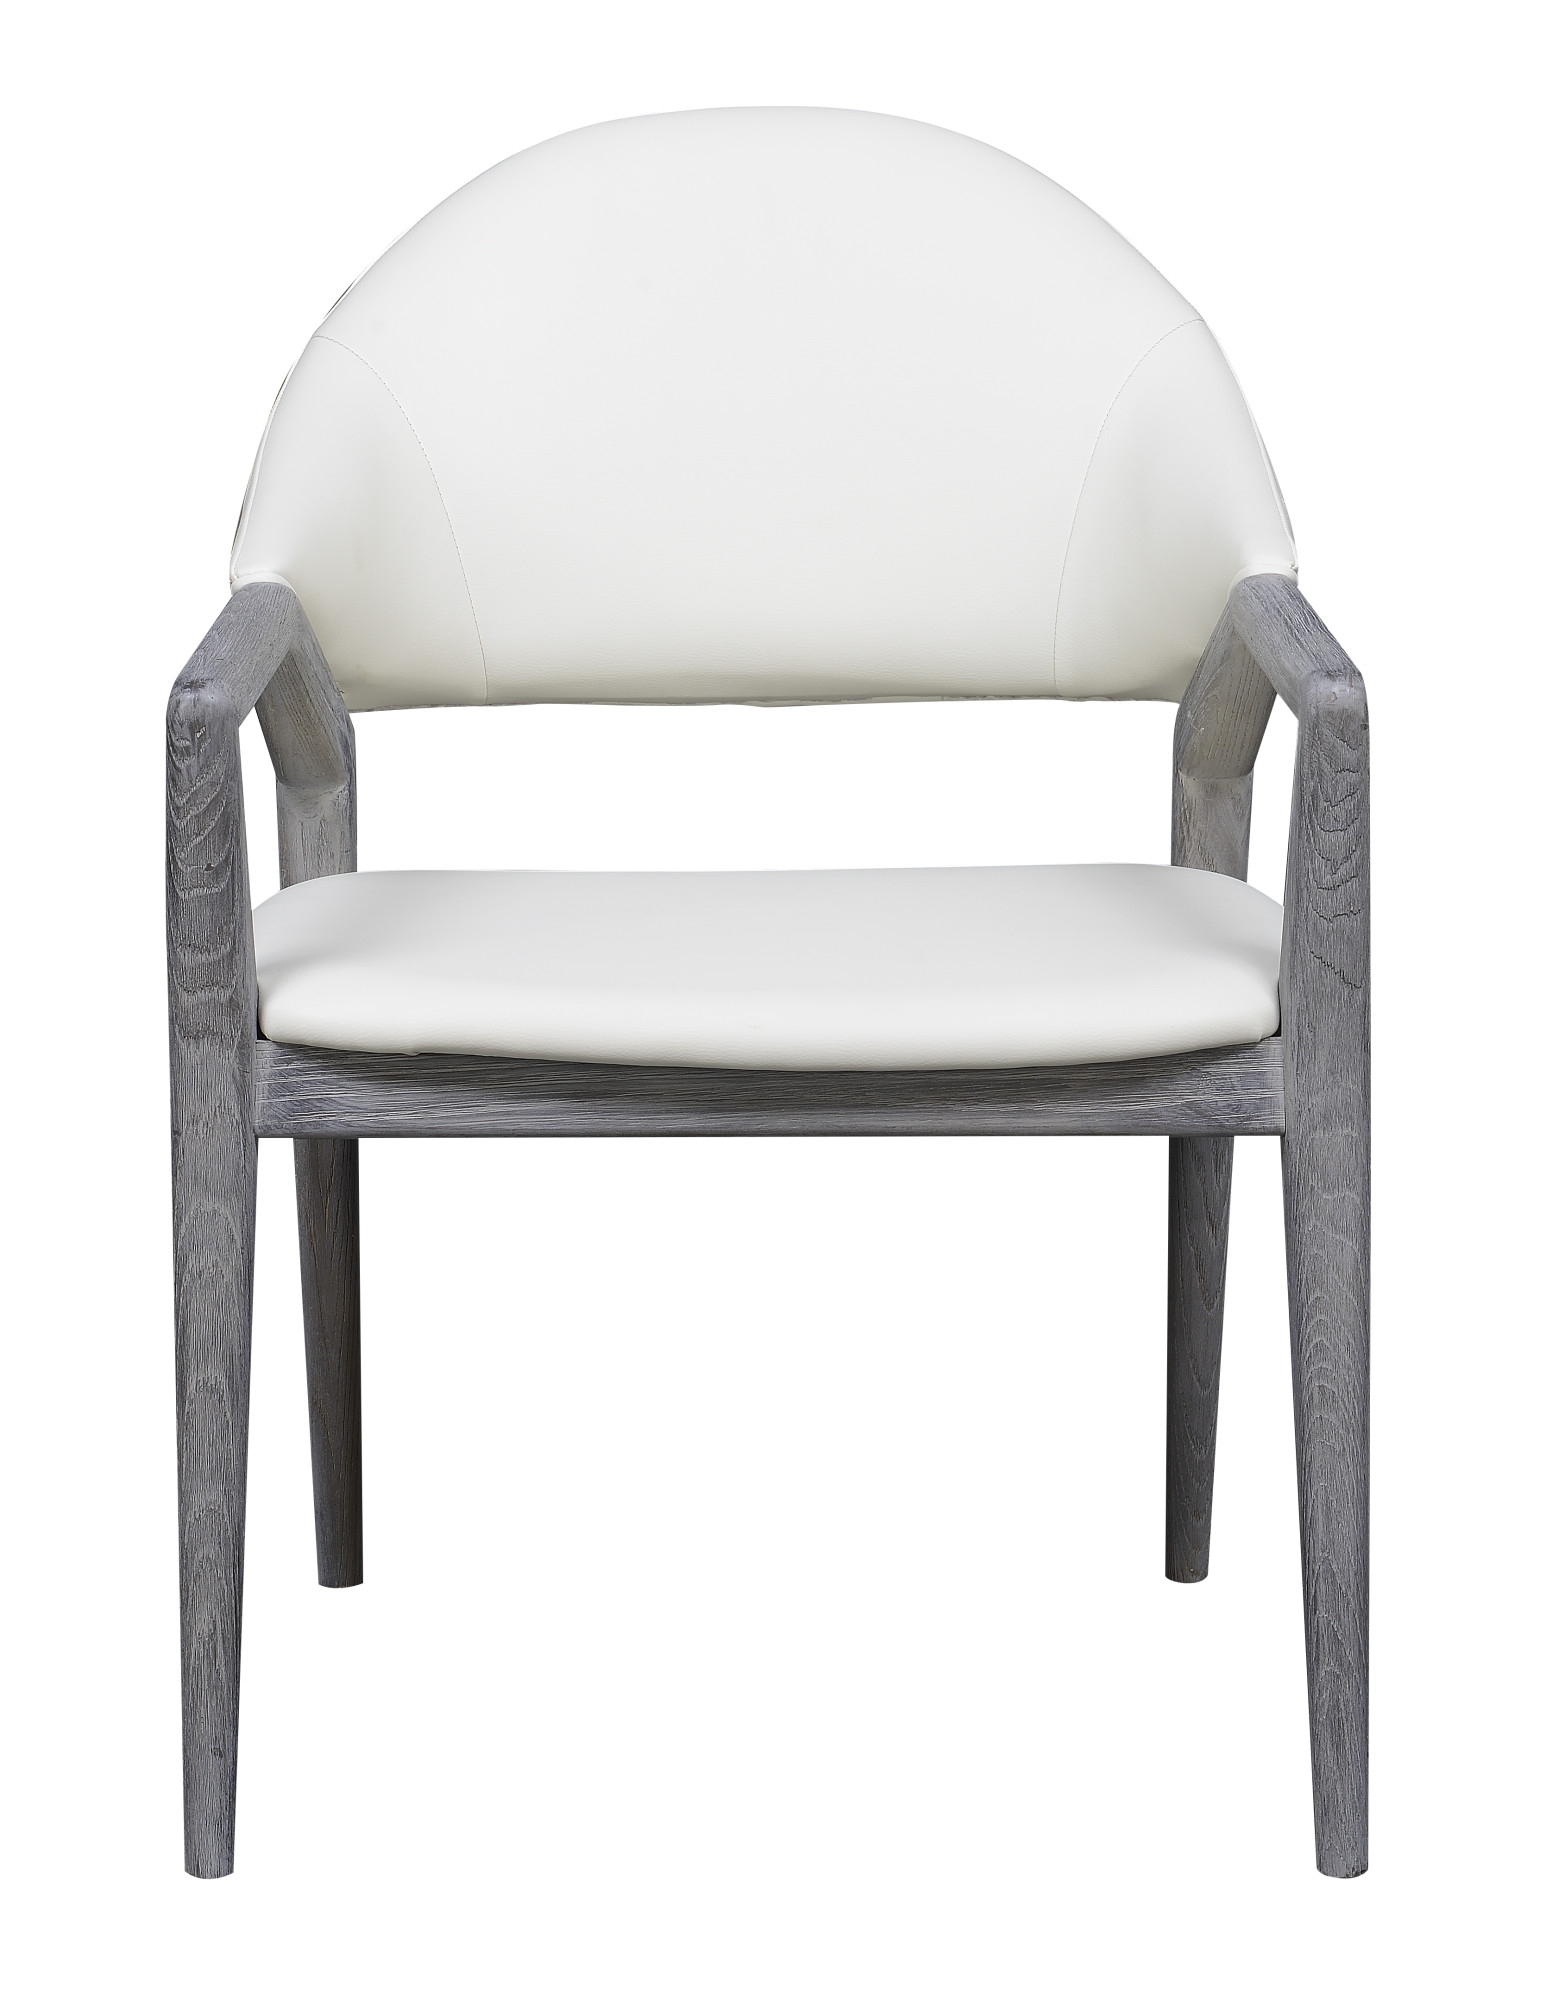 Emerald Home Carrera Slate Gray And Platinum White Dining Arm Chair With Faux Leather Upholstery And Curved Wood Frame For Carrera Contemporary Black Dining Buffets (View 20 of 30)